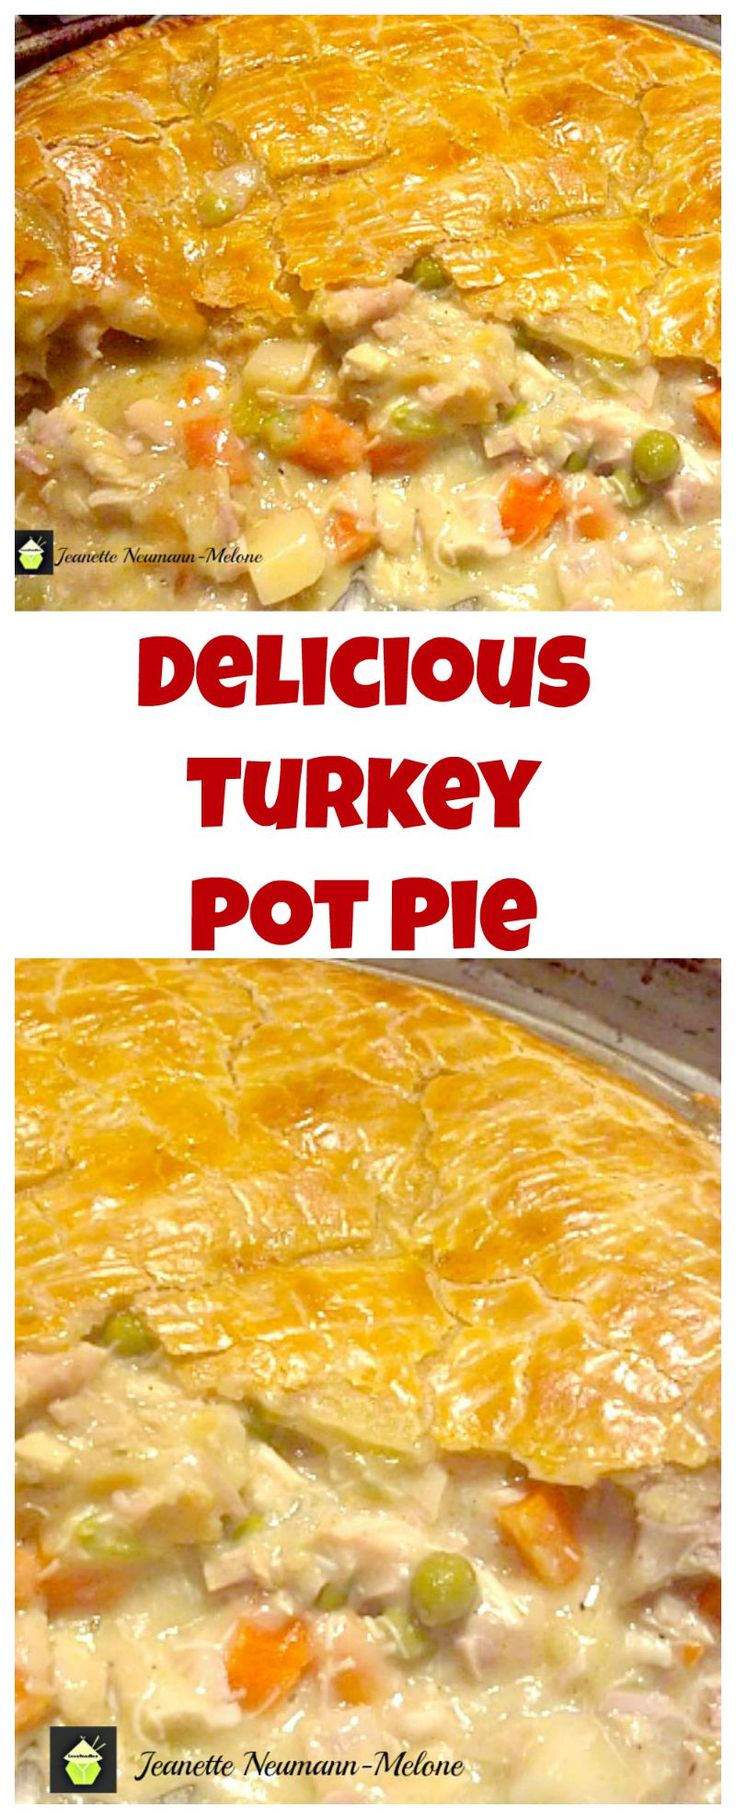 DELICIOUS Turkey Pot Pie, Look at that pie crust!  I would also make this using chicken and ham together (great combo!) Oh my! Plus perfect for using up left over turkey! | Lovefoodies.com